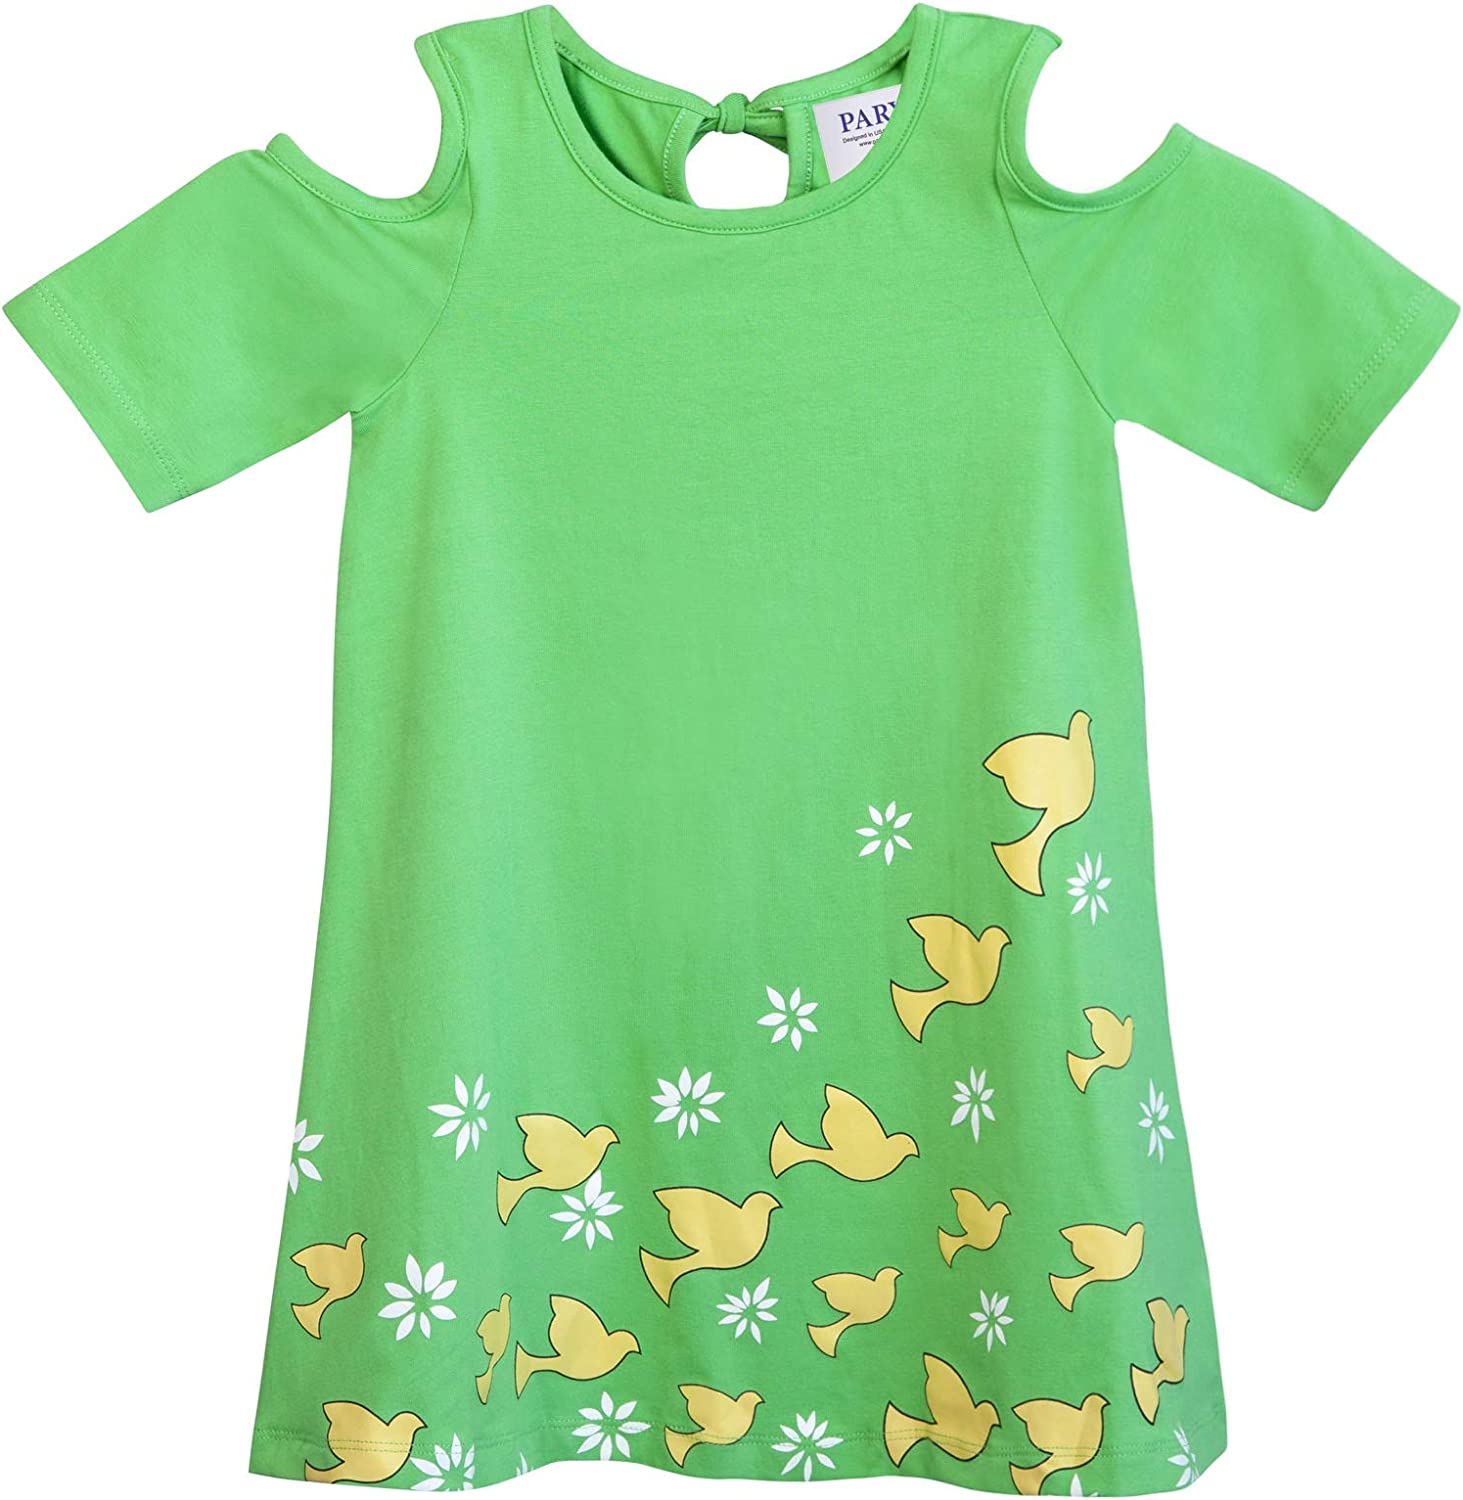 Parya Doves and Floral Design Casual and Party Dress Girls